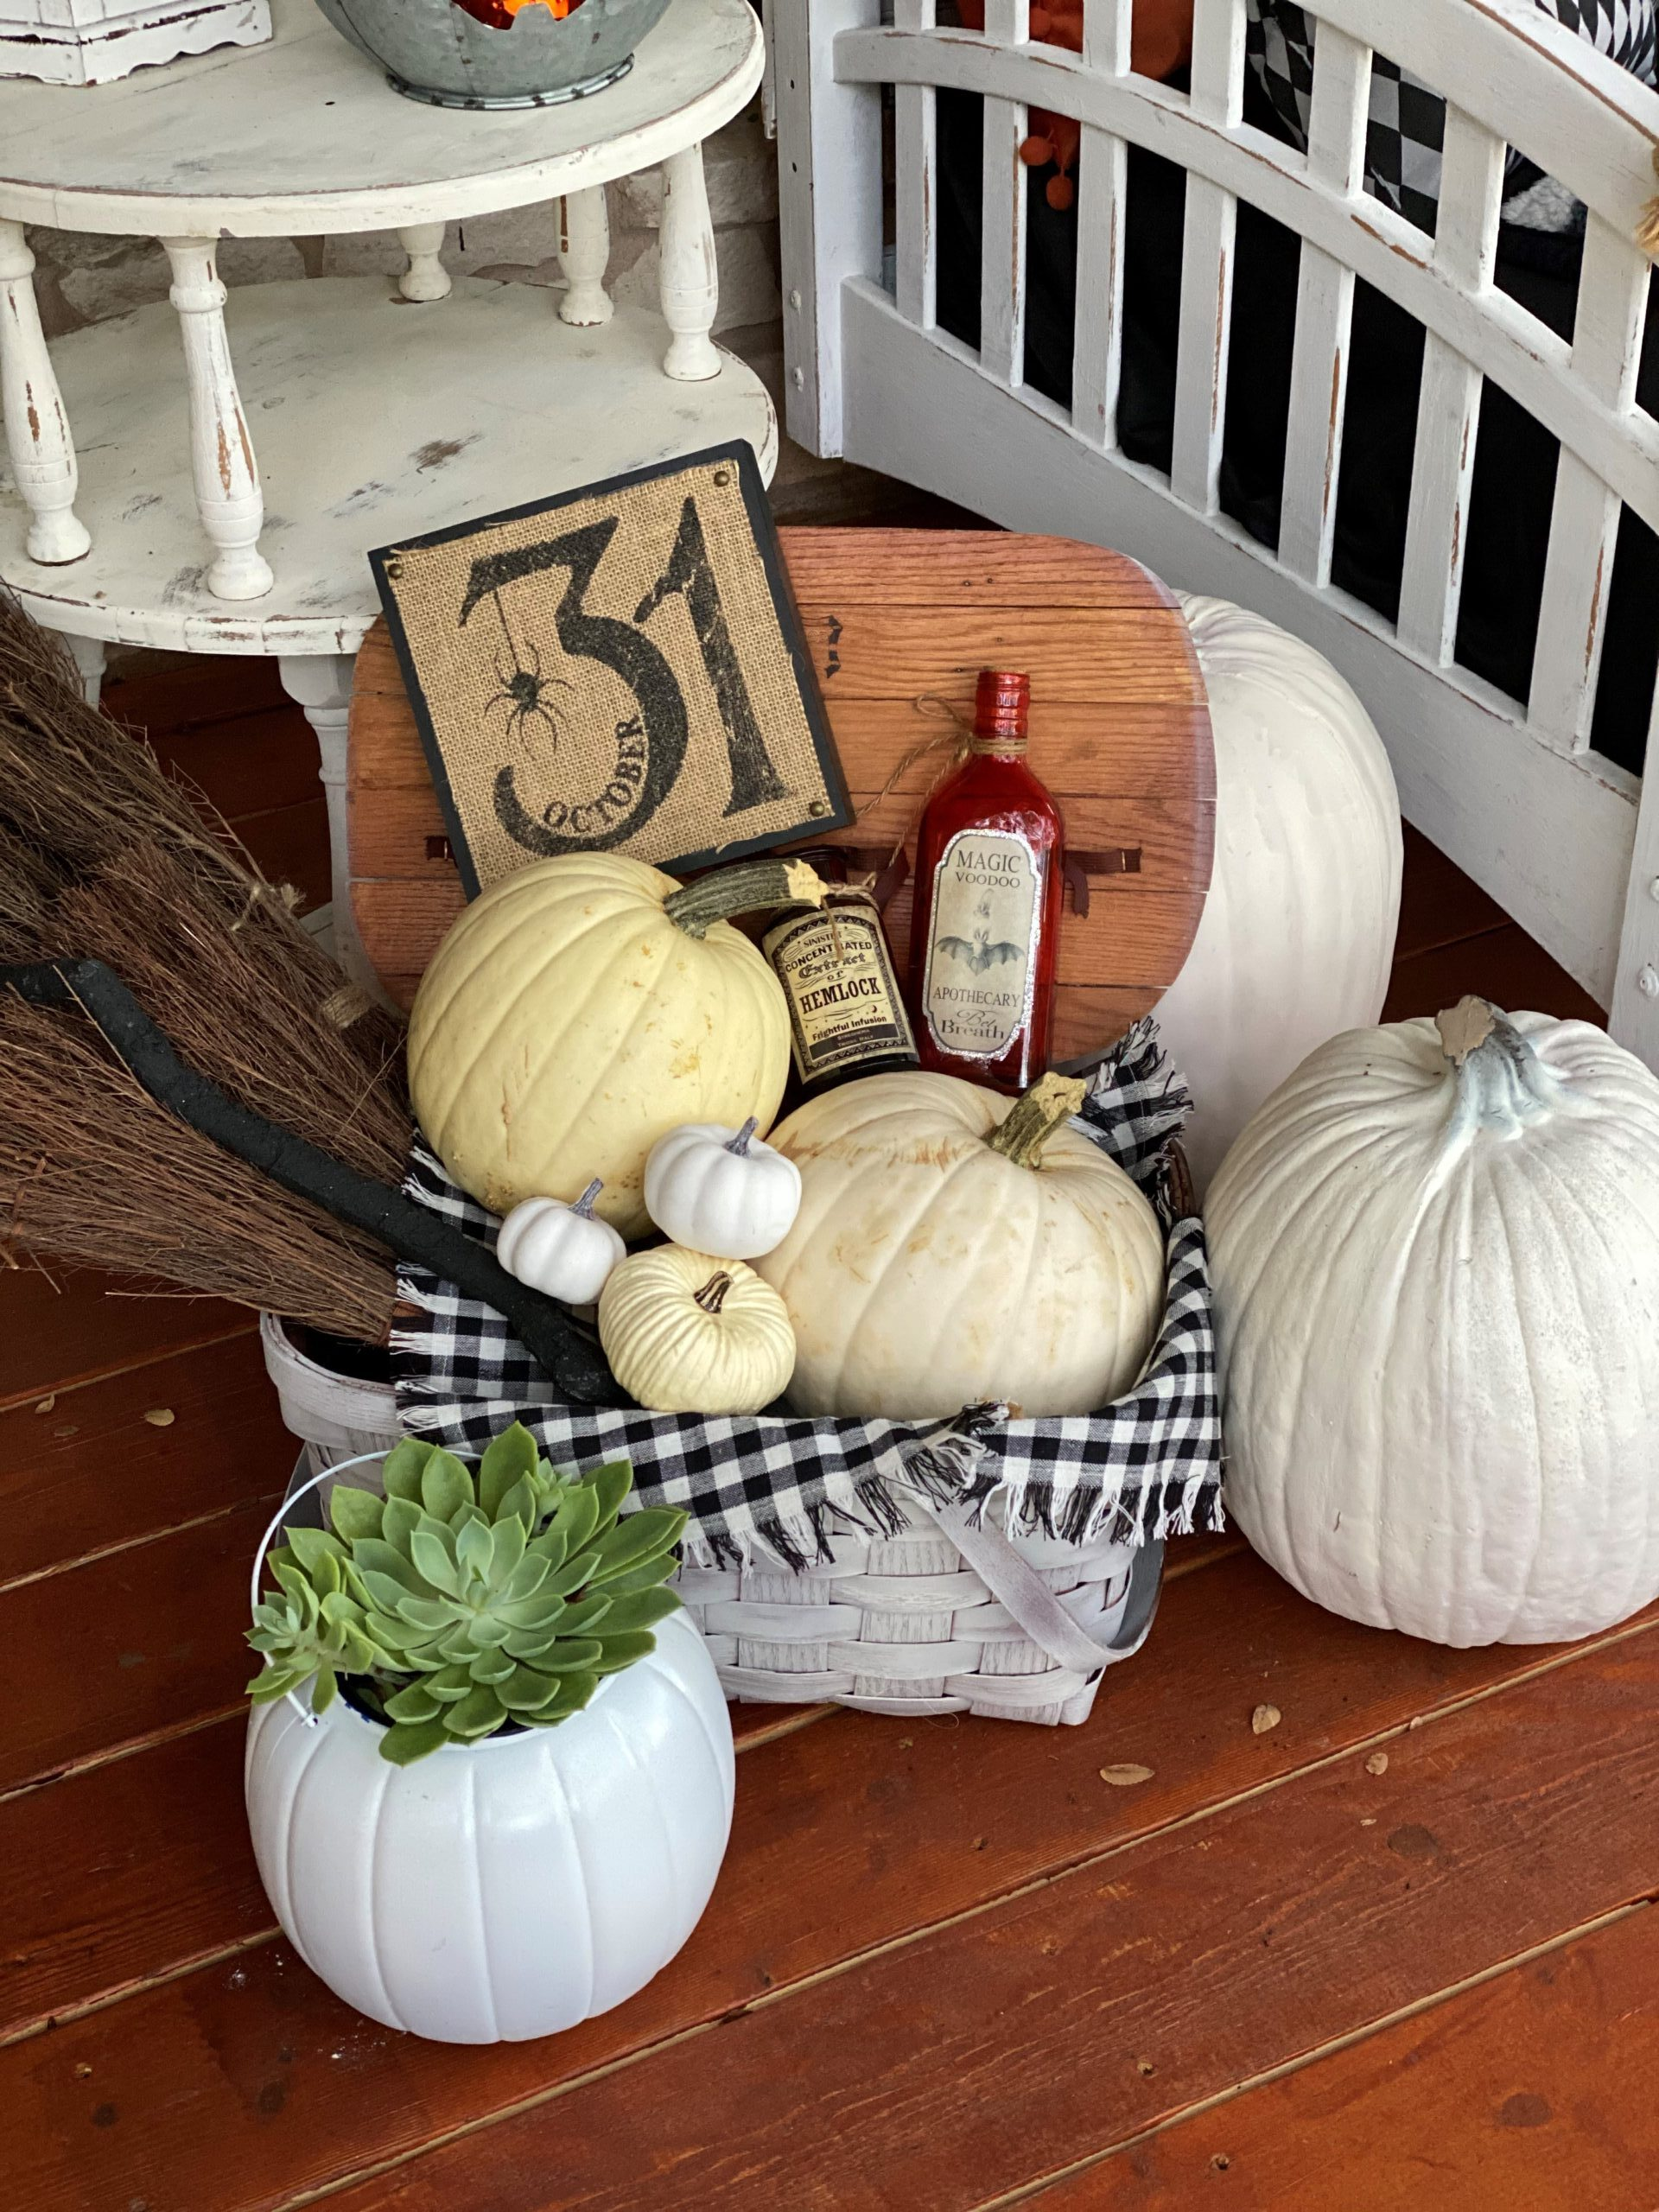 Halloween Front Porch Decorations, Vintage Rustic Front Porch, White Pumpkins, Witches Broom, October 31